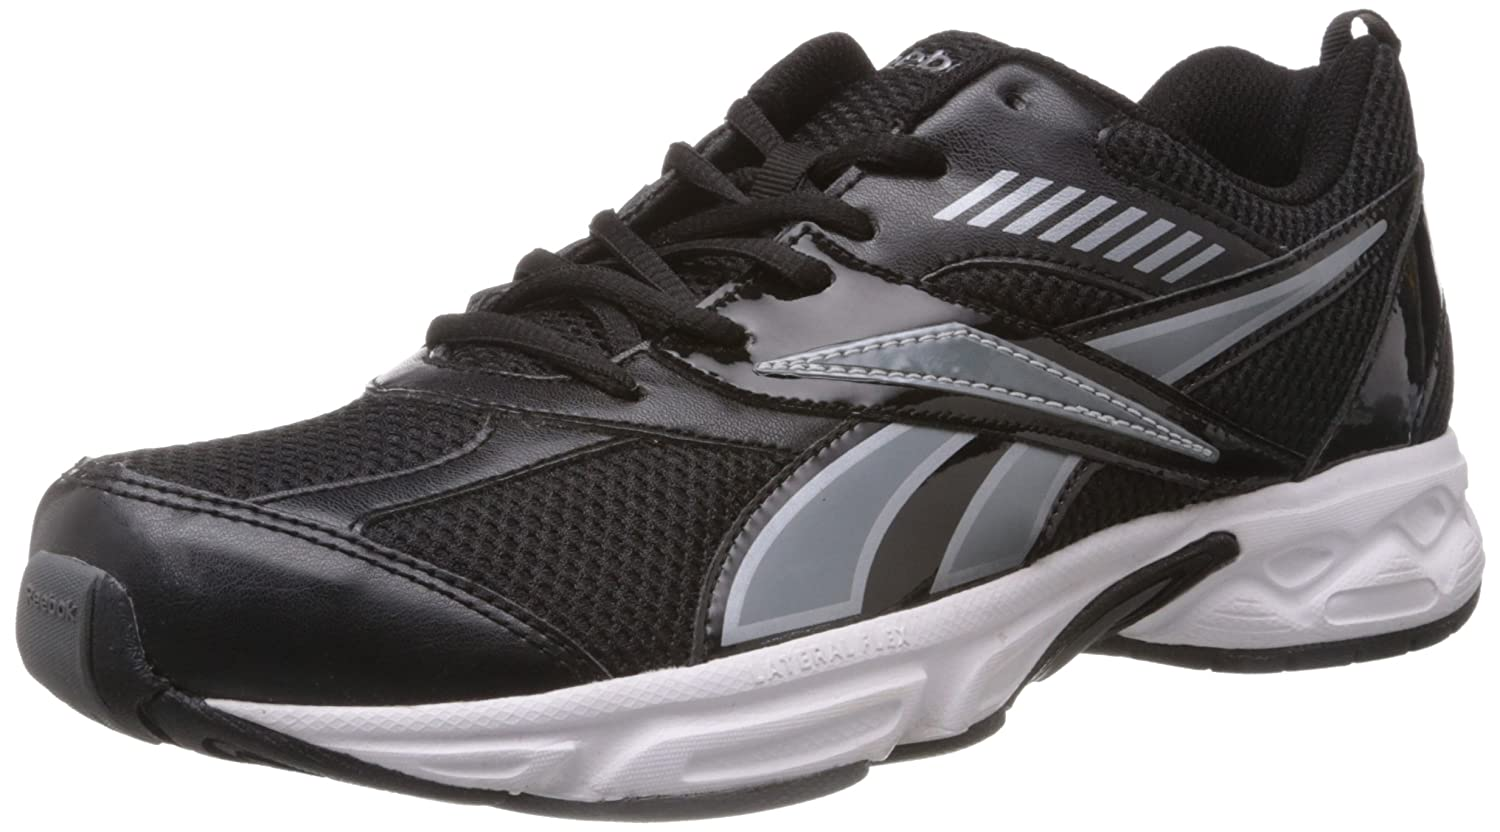 Reebok Joggesko Online Shopping India 9l9Mg3LRP